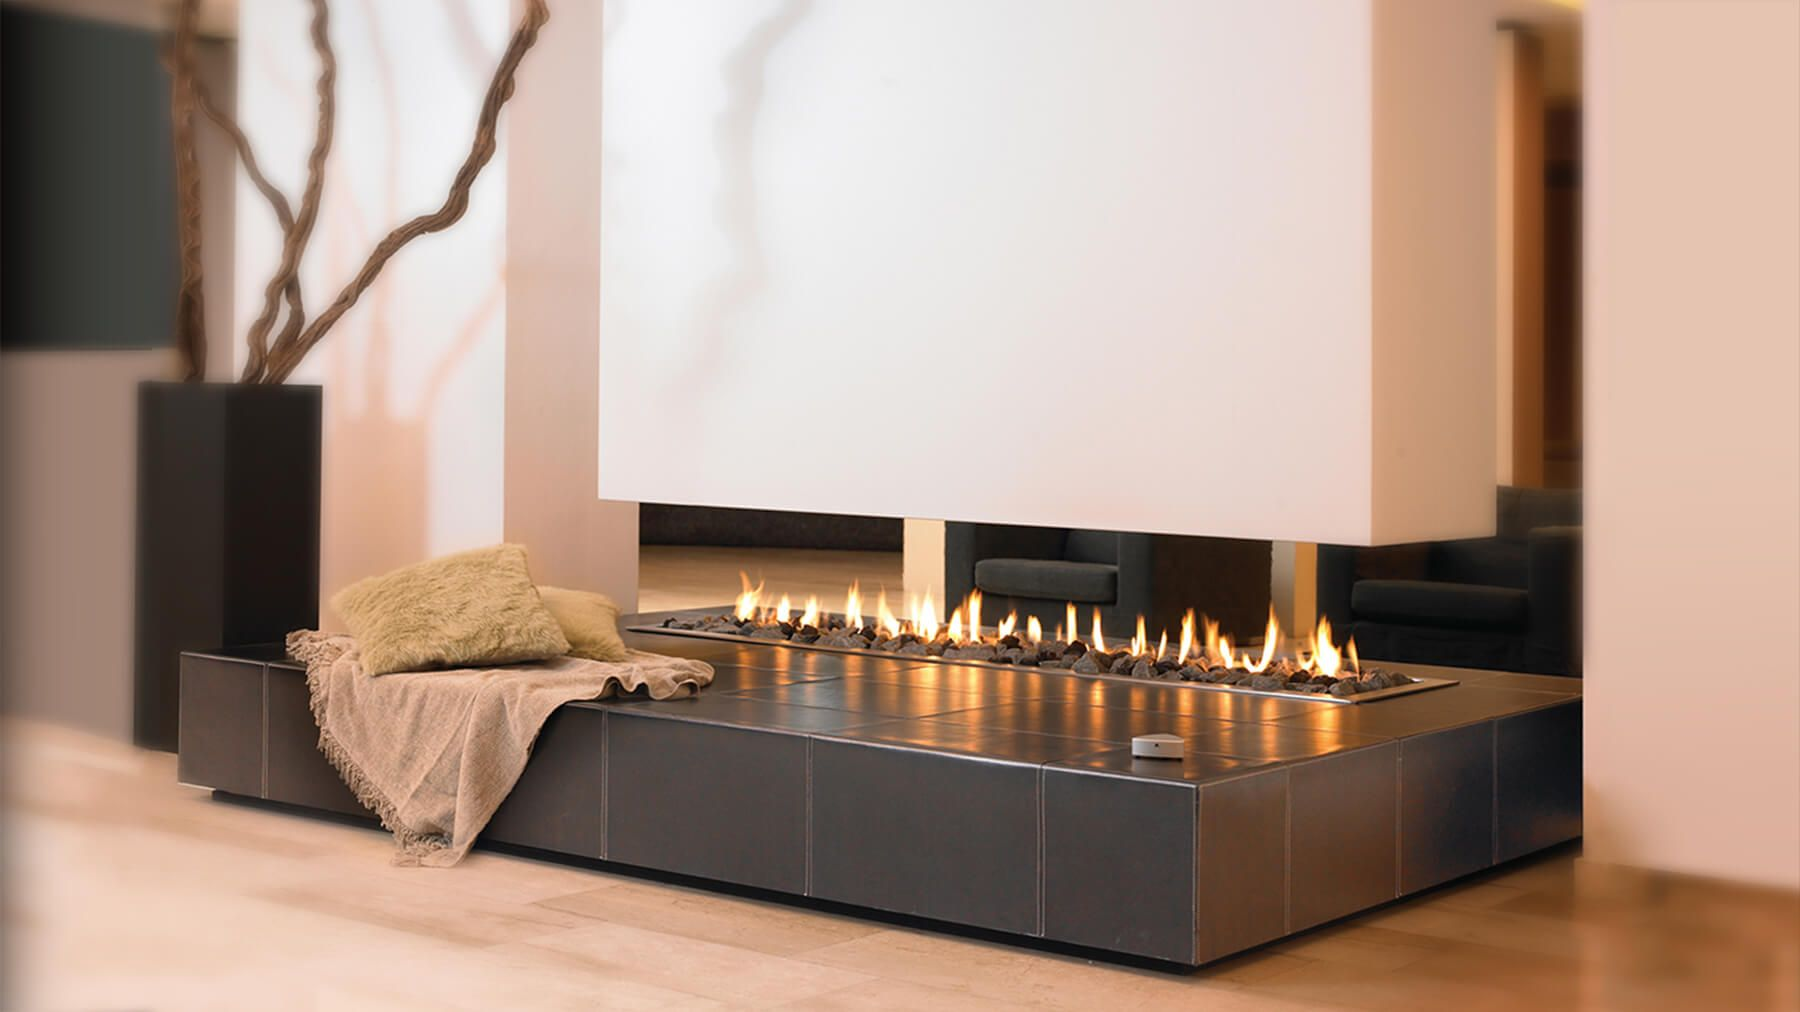 This suspended designer fireplaces transforms a fireplace into a piece of  furniture. See how our suspended designer fireplaces could be incorporated  into ...